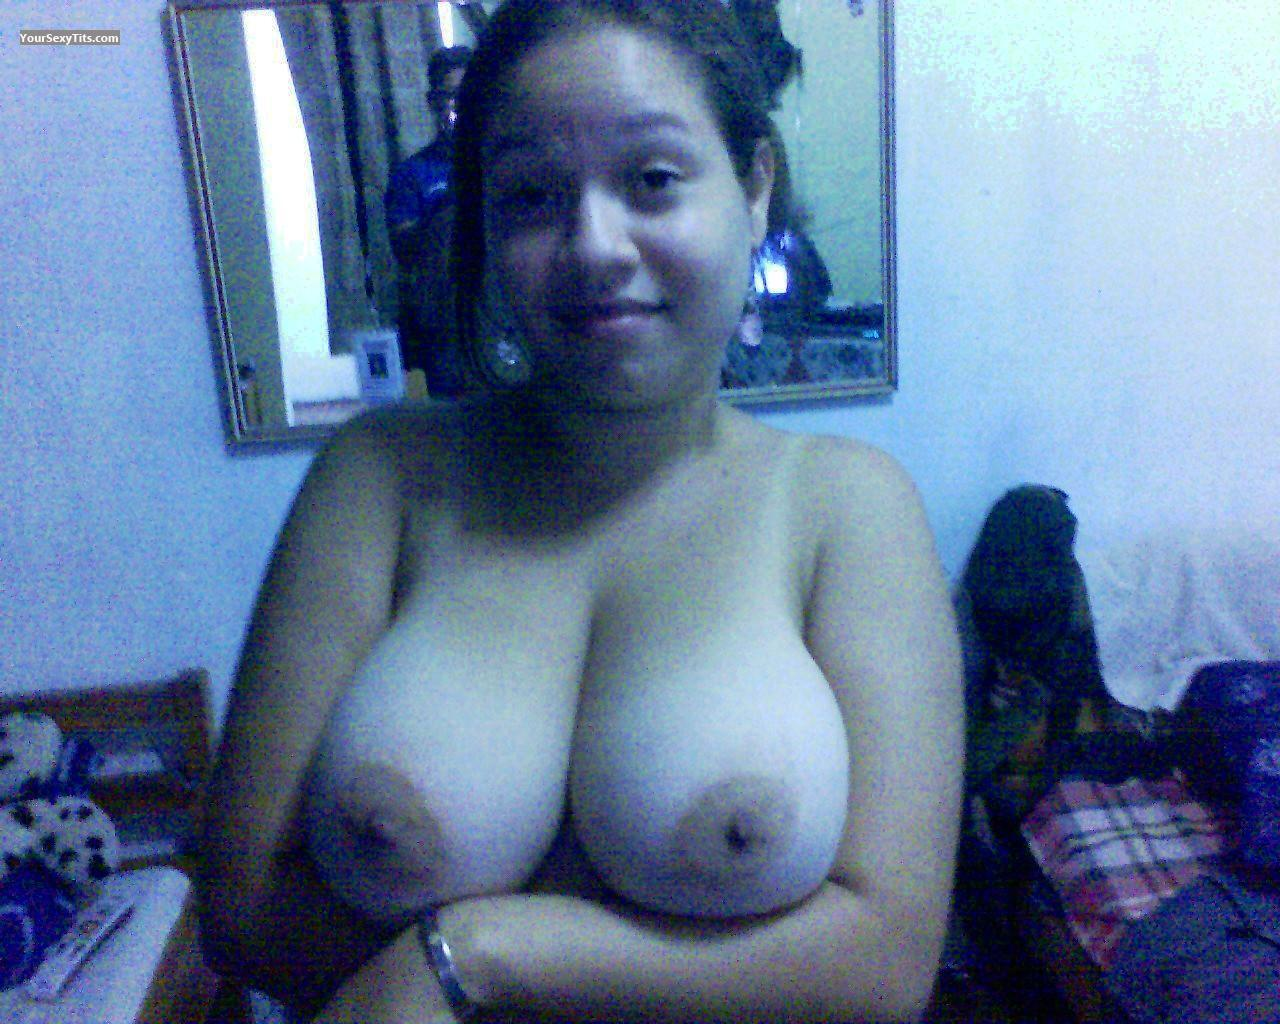 Tit Flash: Very Big Tits - Topless ADRIANA  CHIQUI from Venezuela